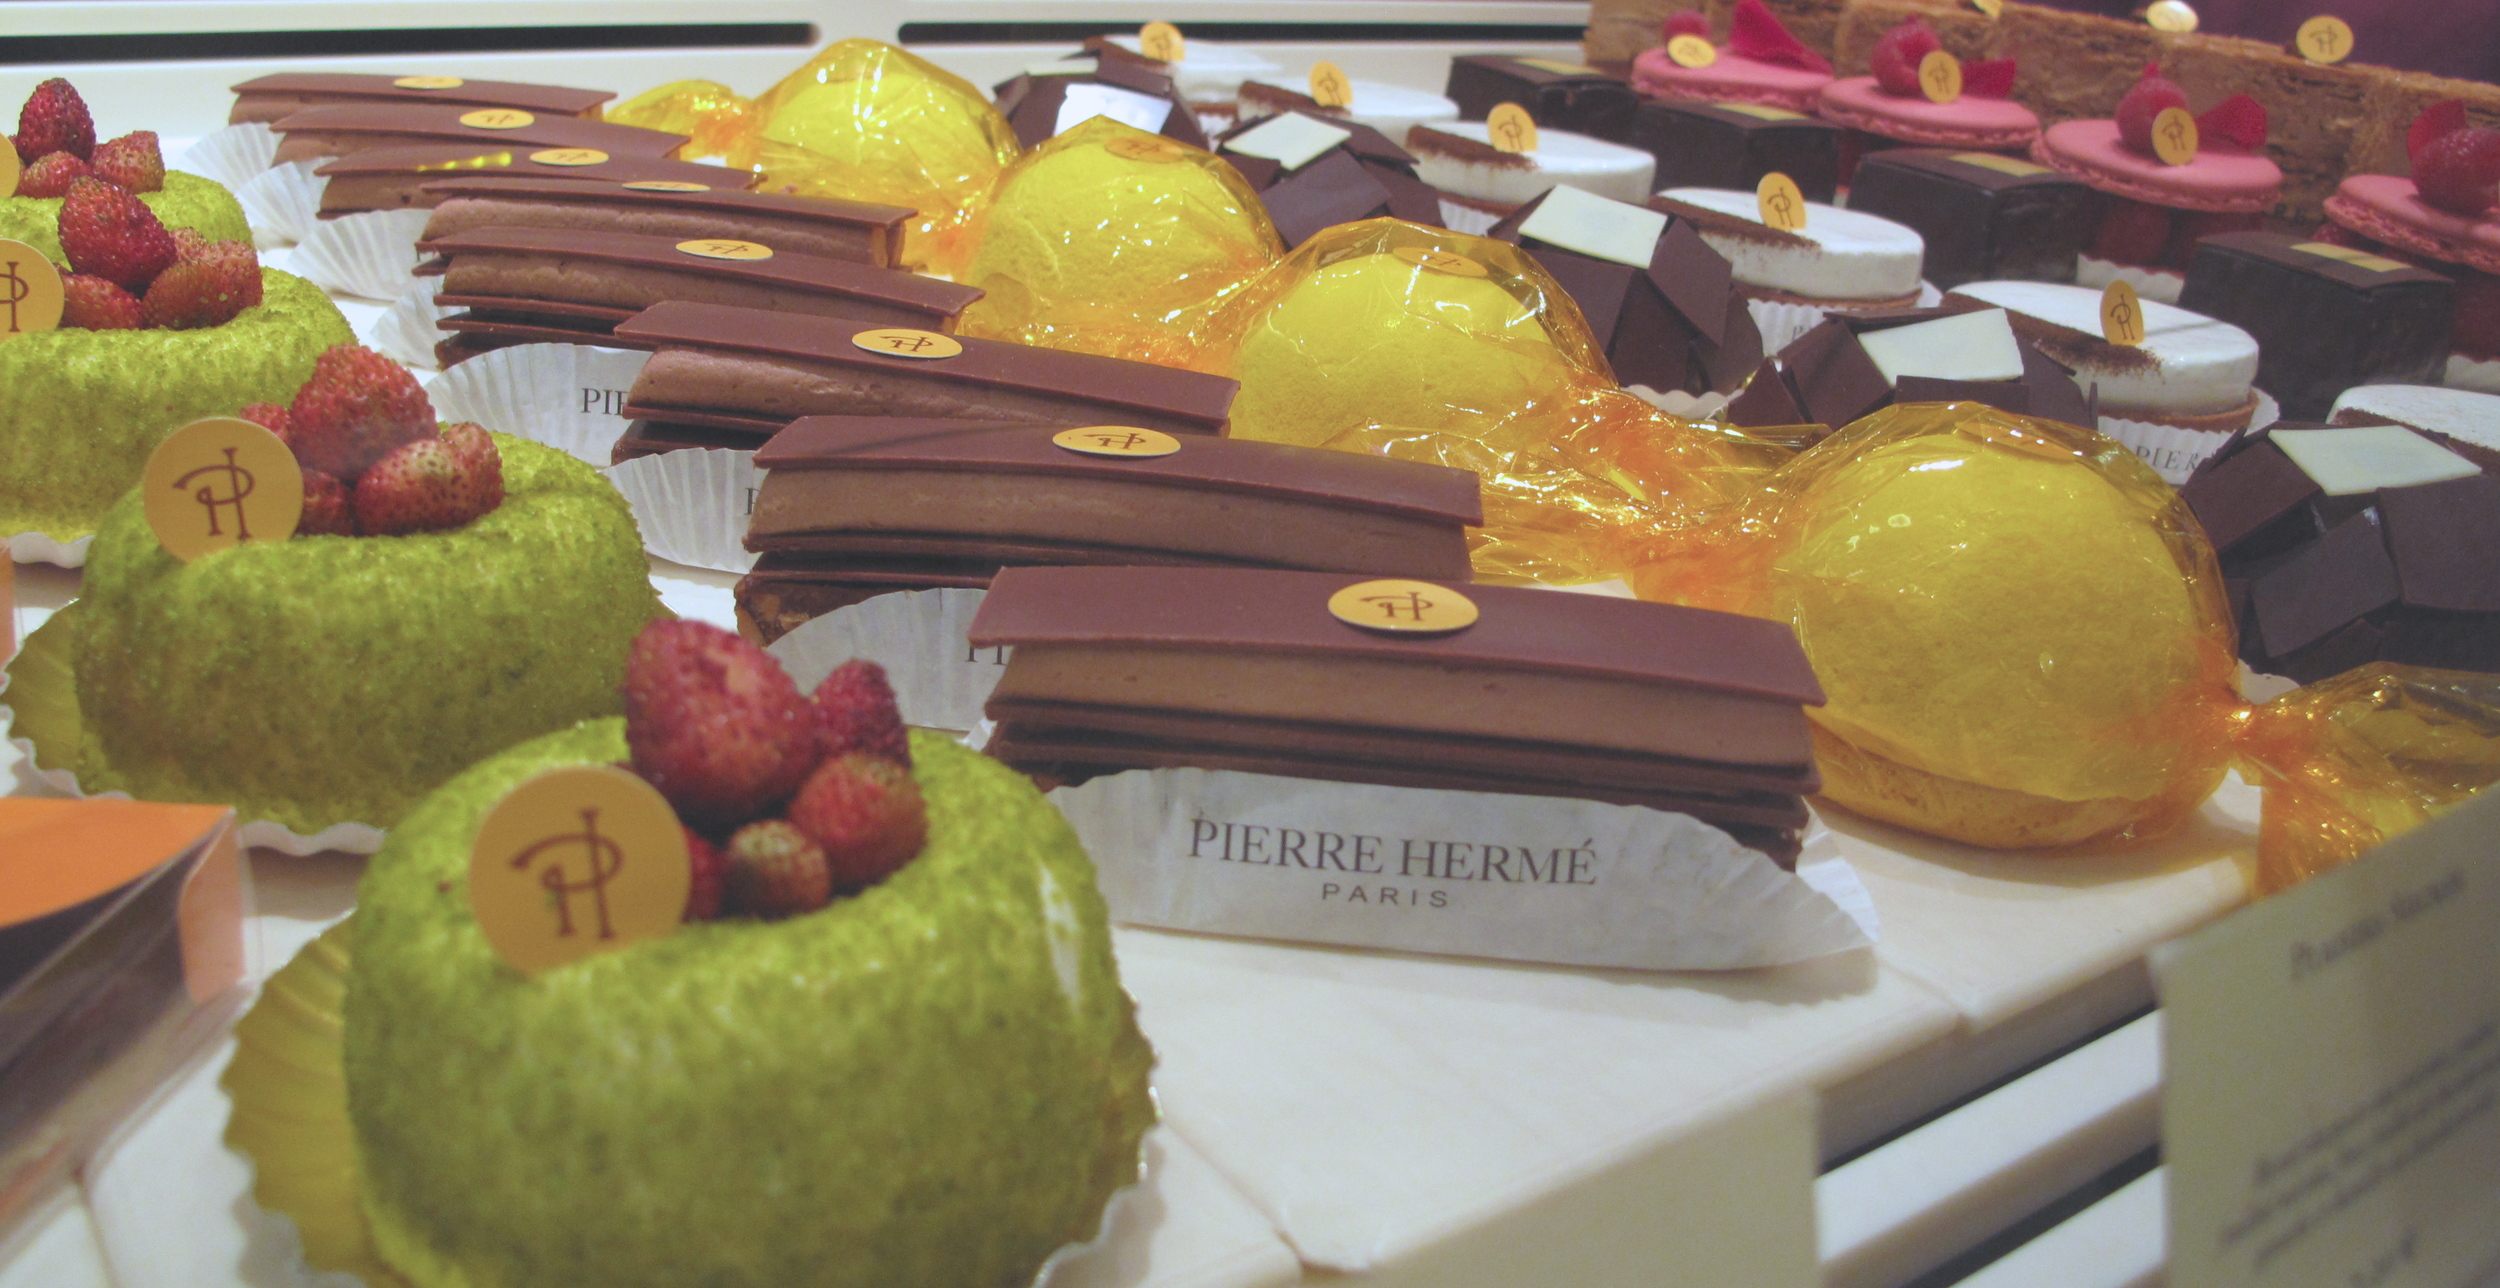 Colourful pastries at Pierre Hermé near Place St Sulpice